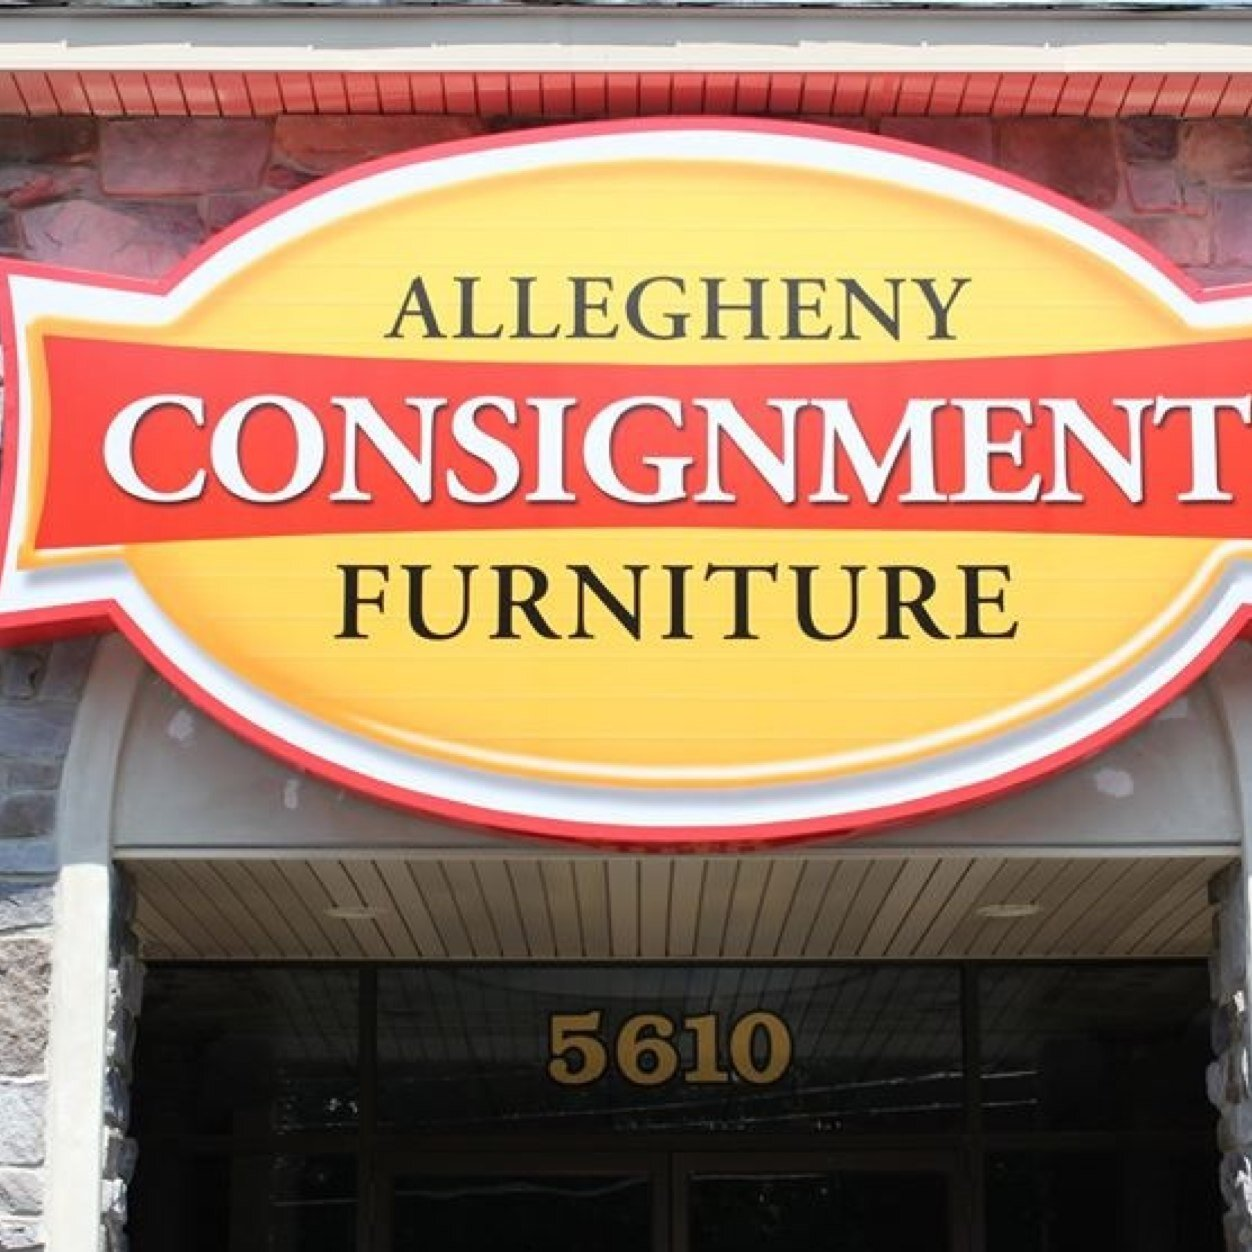 Allegheny Furniture Afc Furniture Twitter